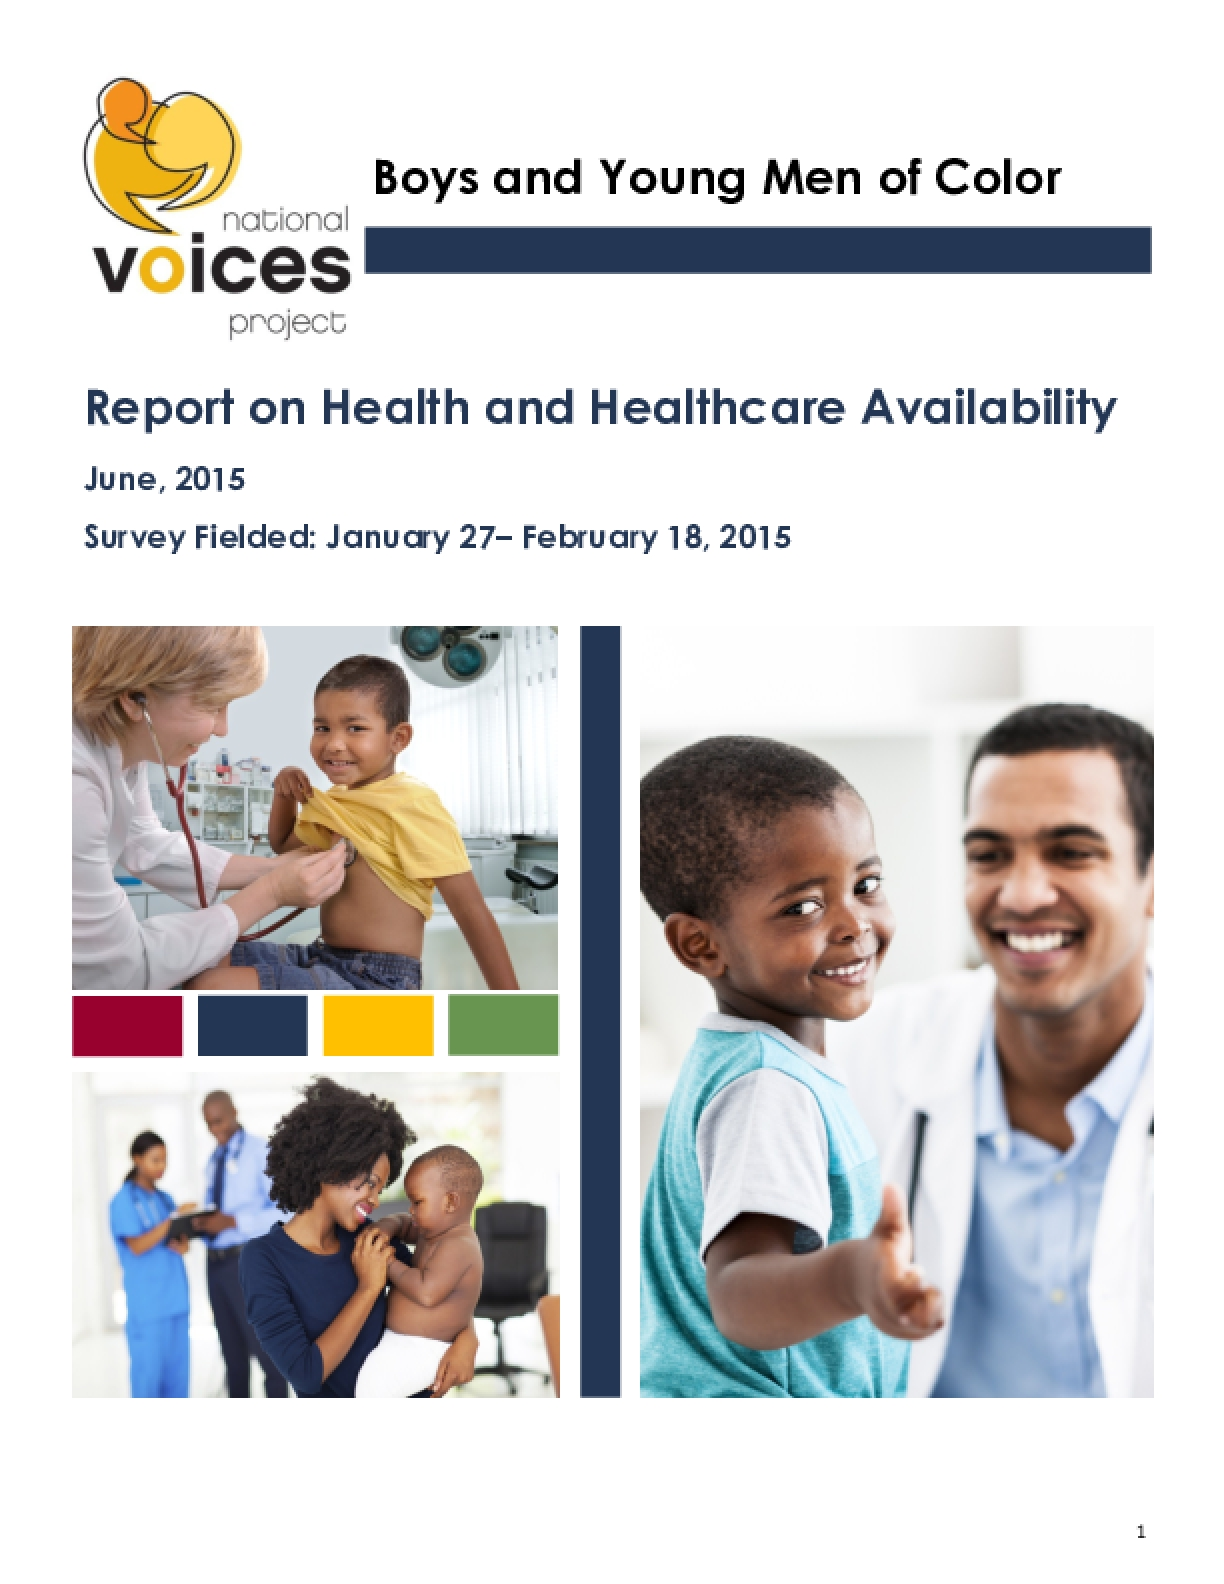 Boys and Young Men of Color: Report on Health and Healthcare Availability